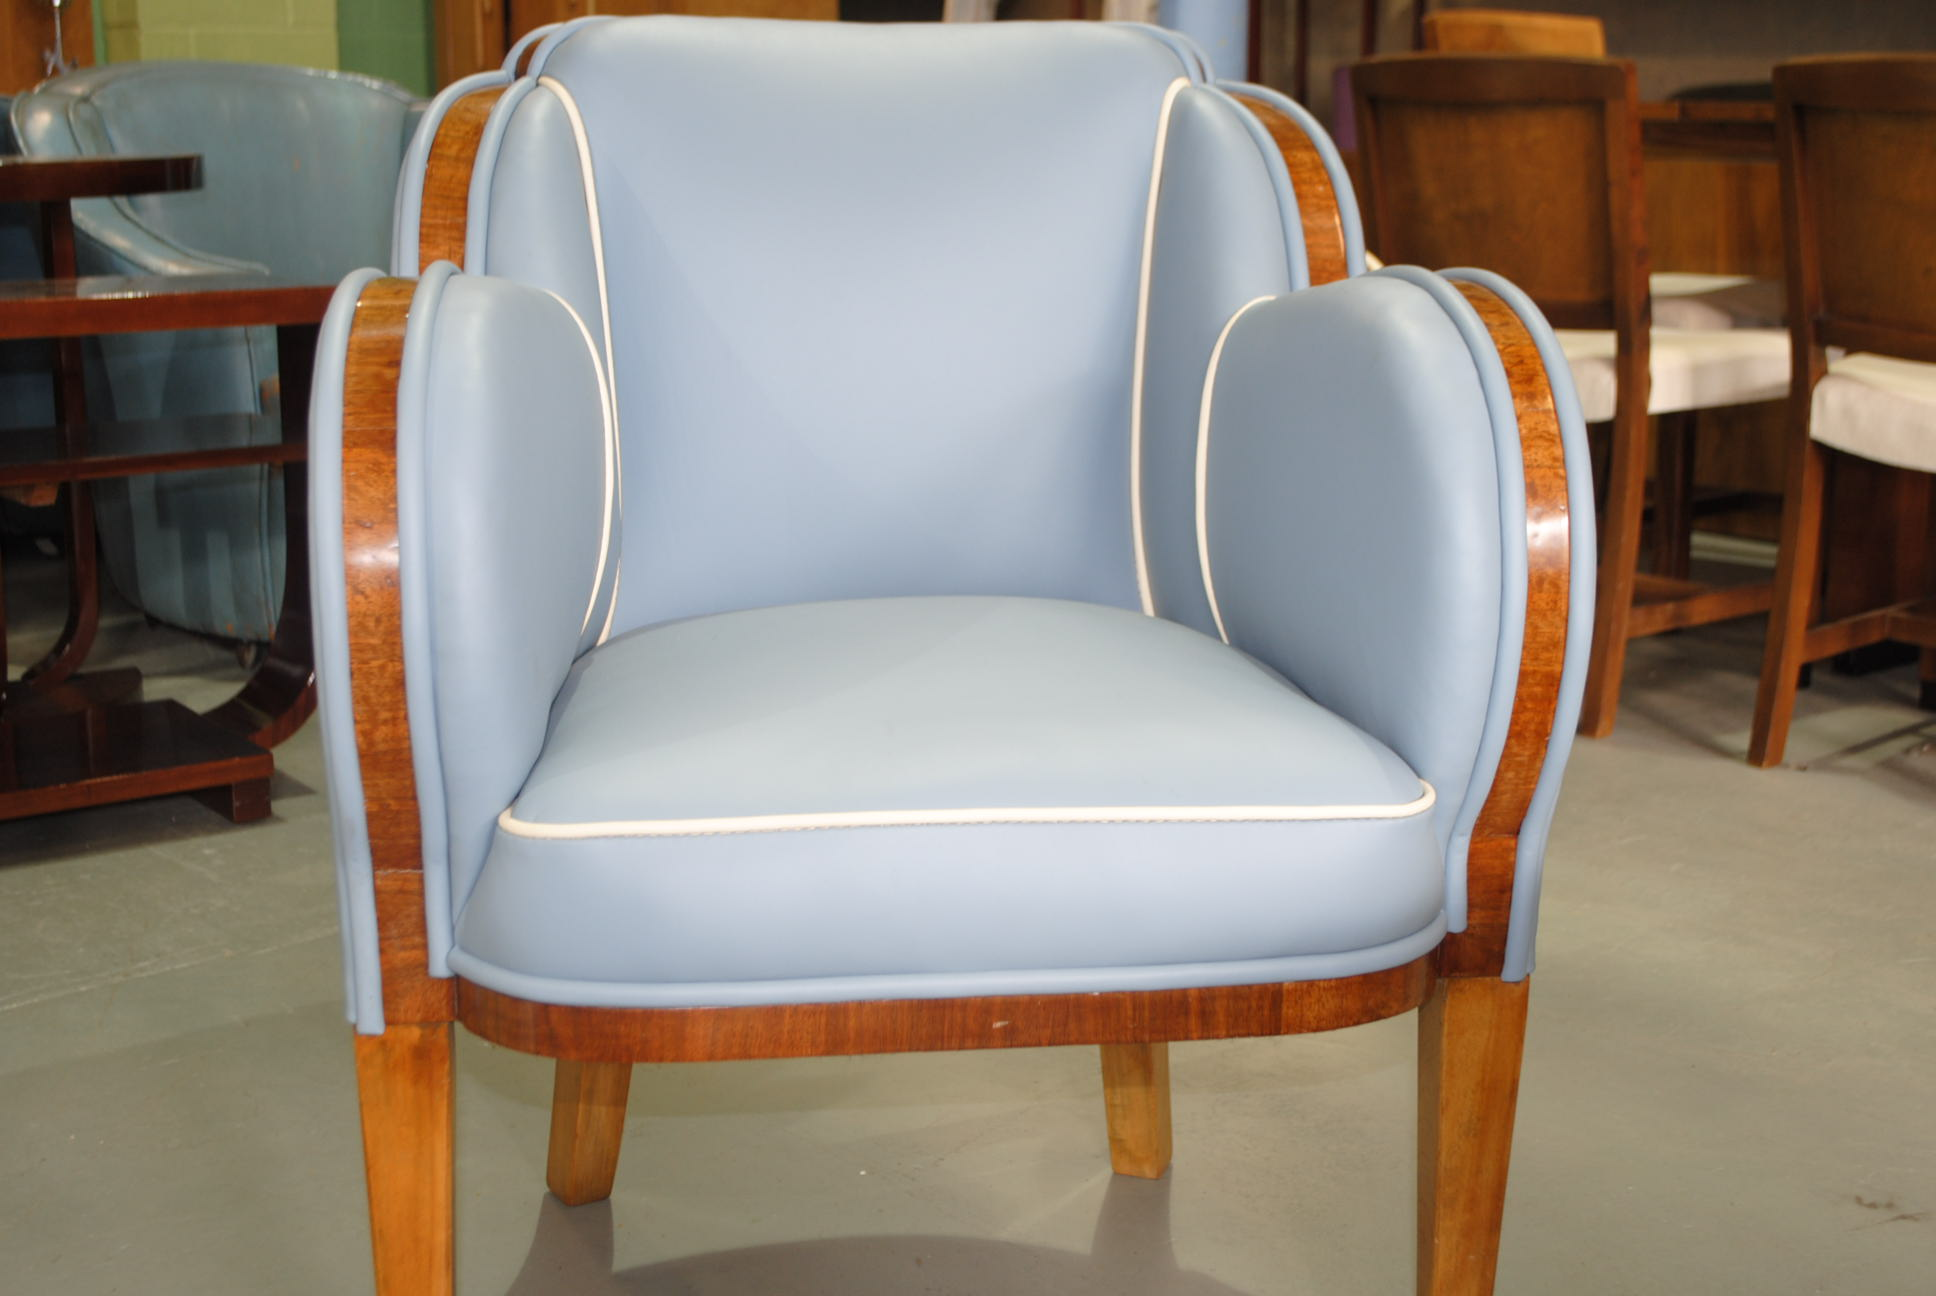 Epstein art deco occasional chair cloud 9 art deco furniture sales - Epstein art deco furniture ...